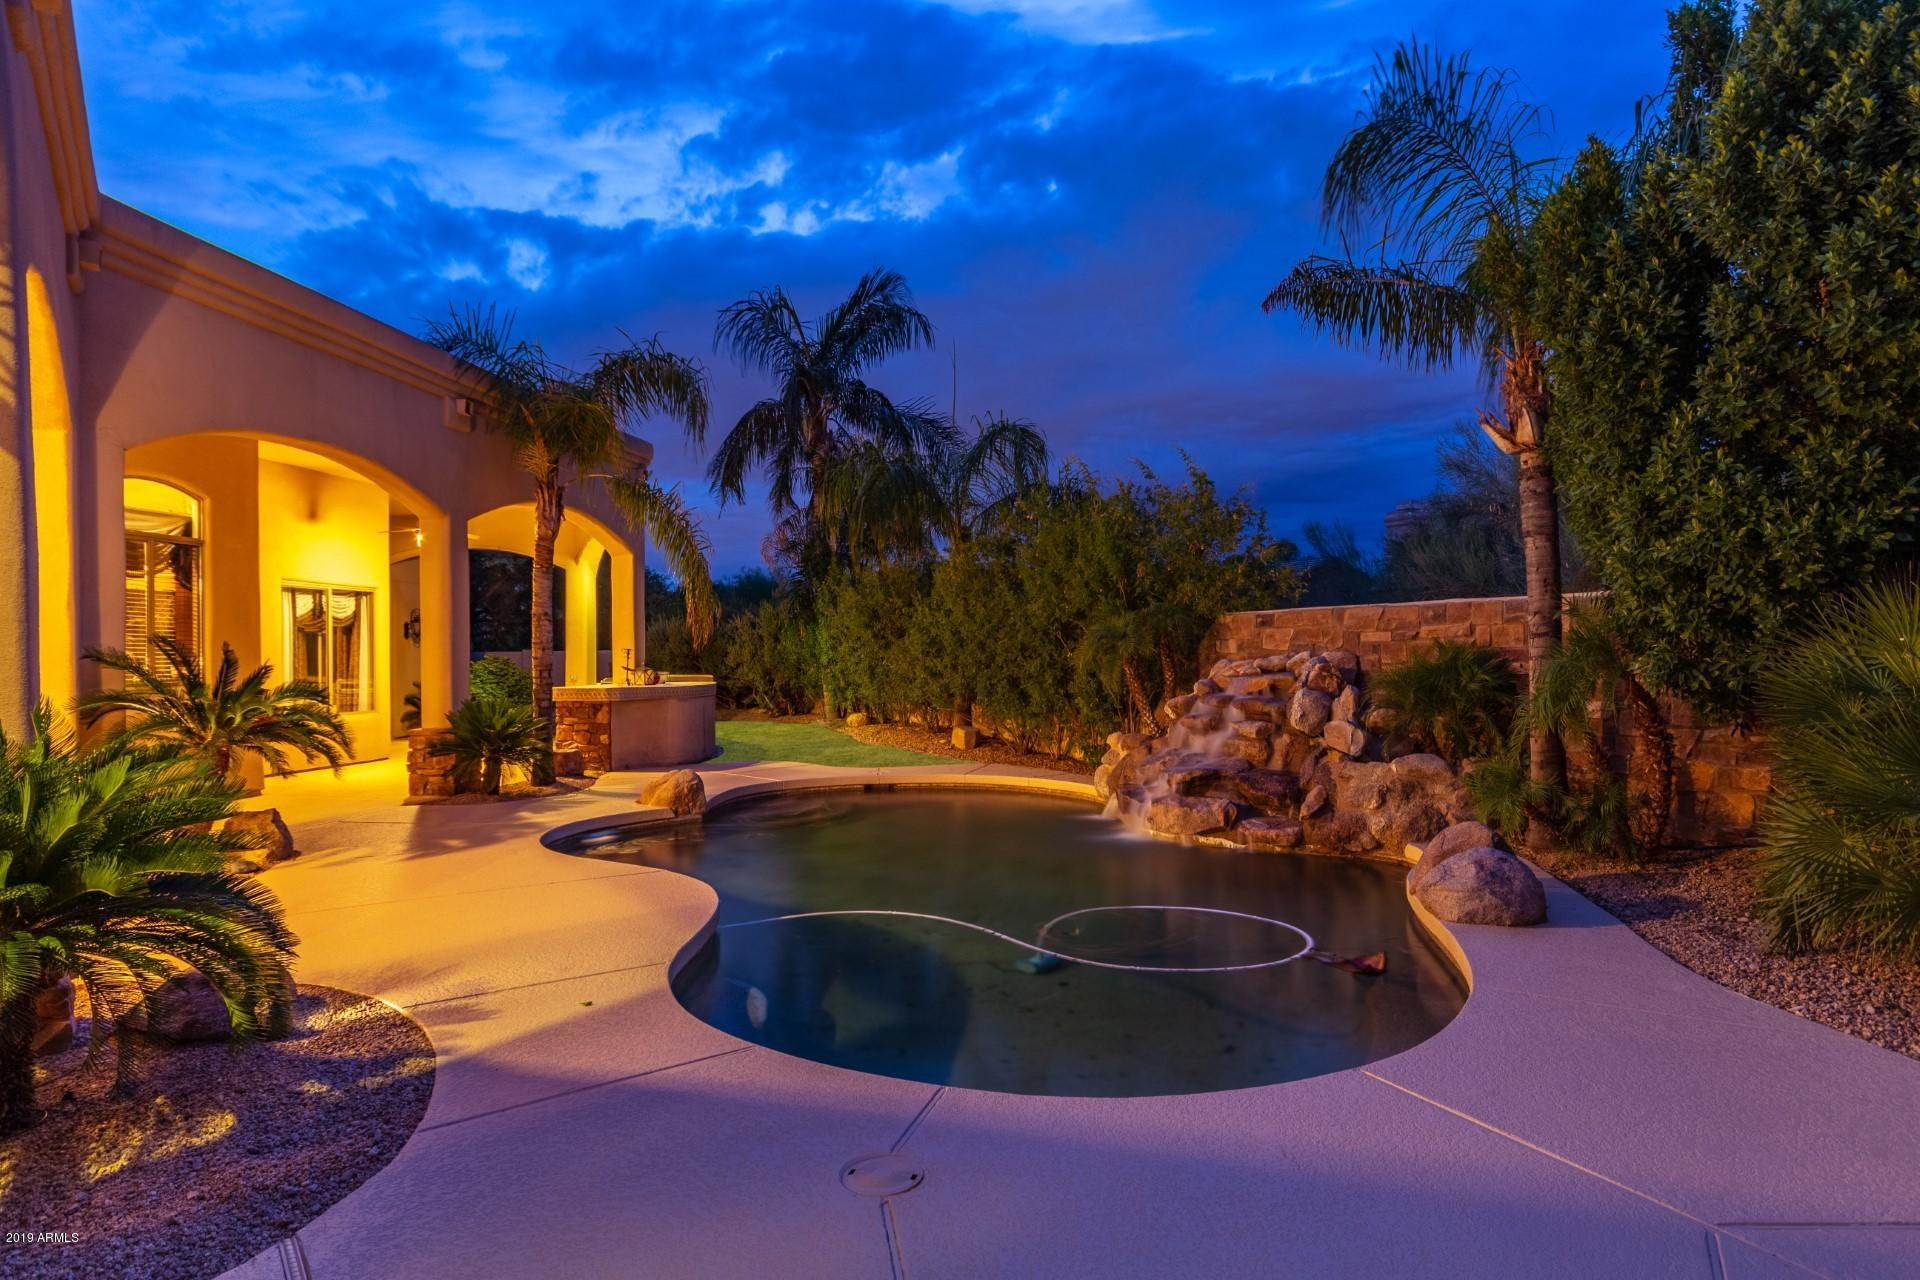 MLS 5965033 12130 E ARABIAN PARK Drive, Scottsdale, AZ 85259 Scottsdale AZ Private Pool